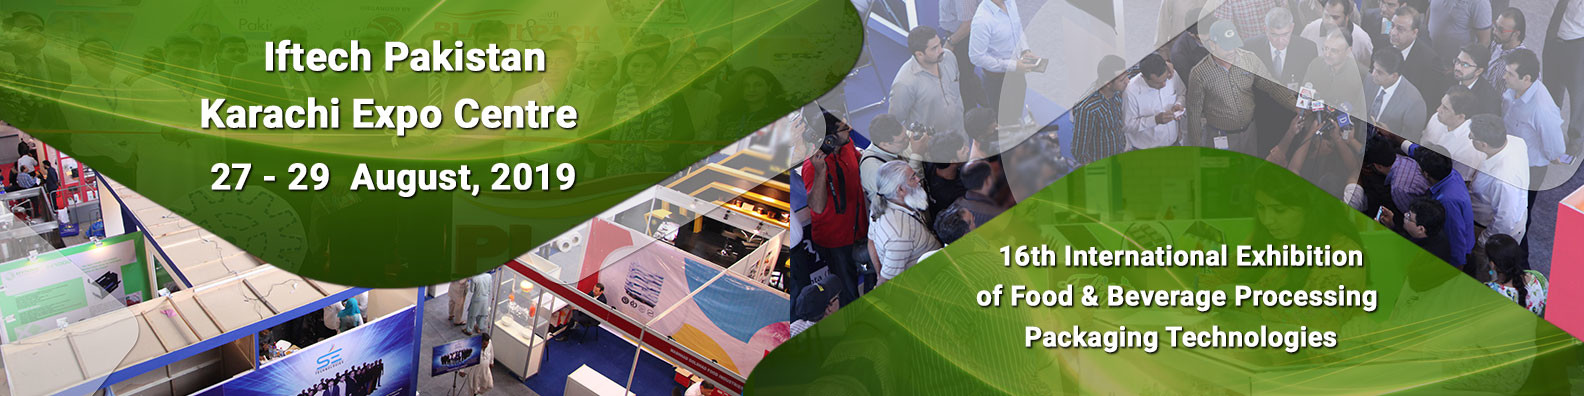 International Exhibition for Food and Beverage Processing Packaging Technologies